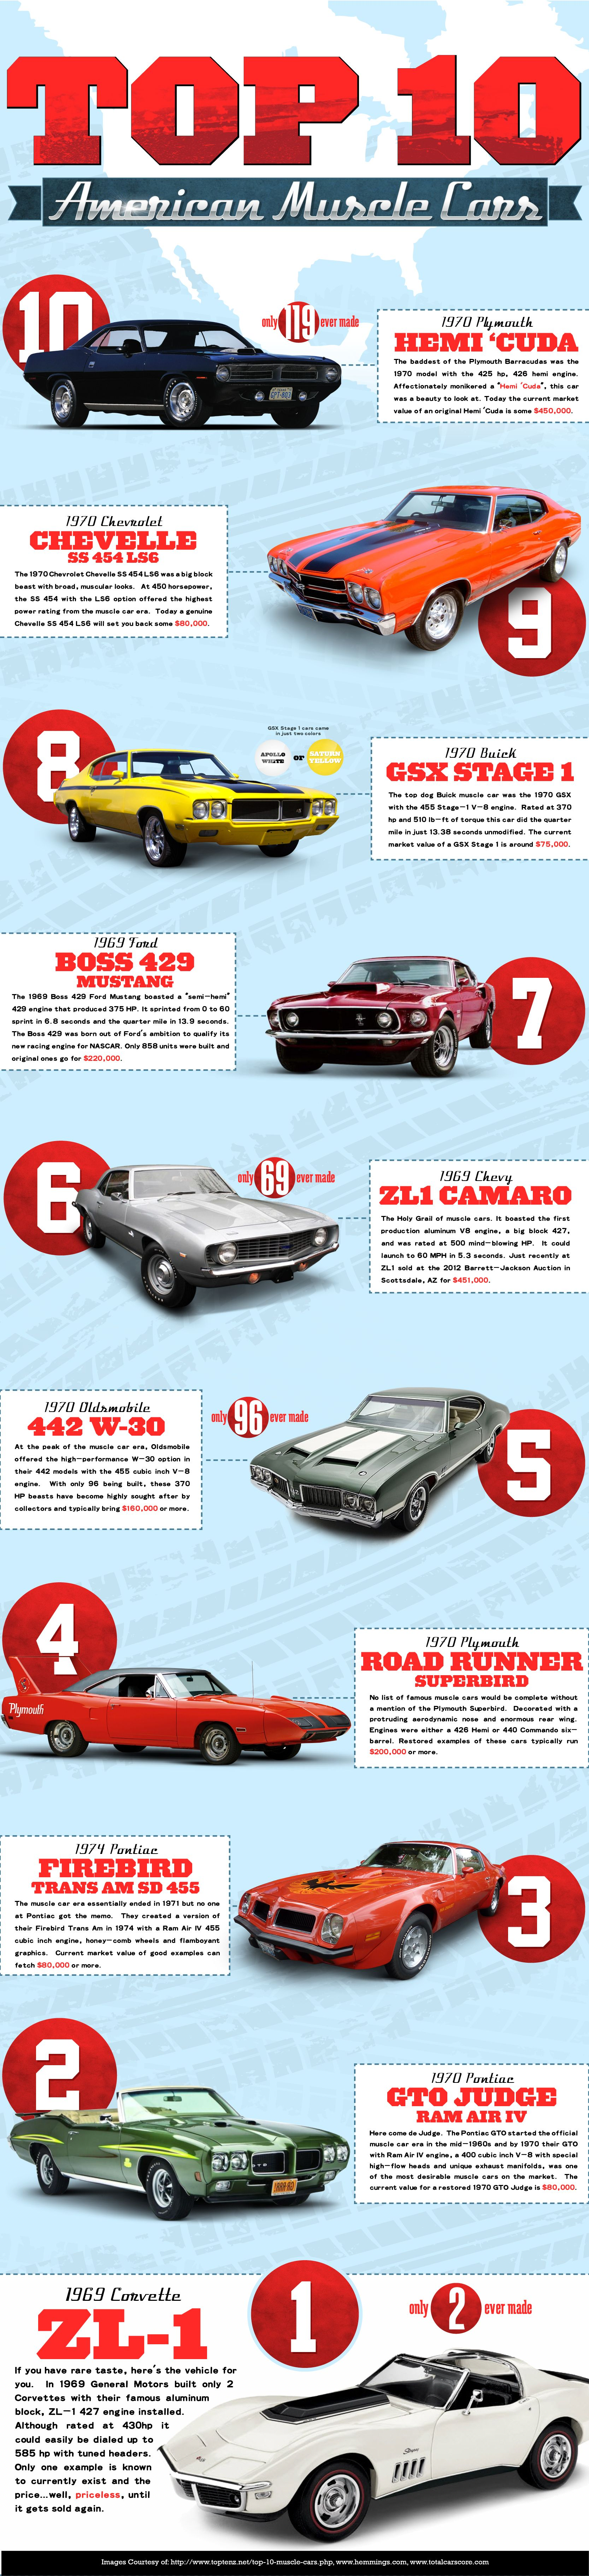 Top American Muscle Cars American Muscle Cars Muscles And Cars